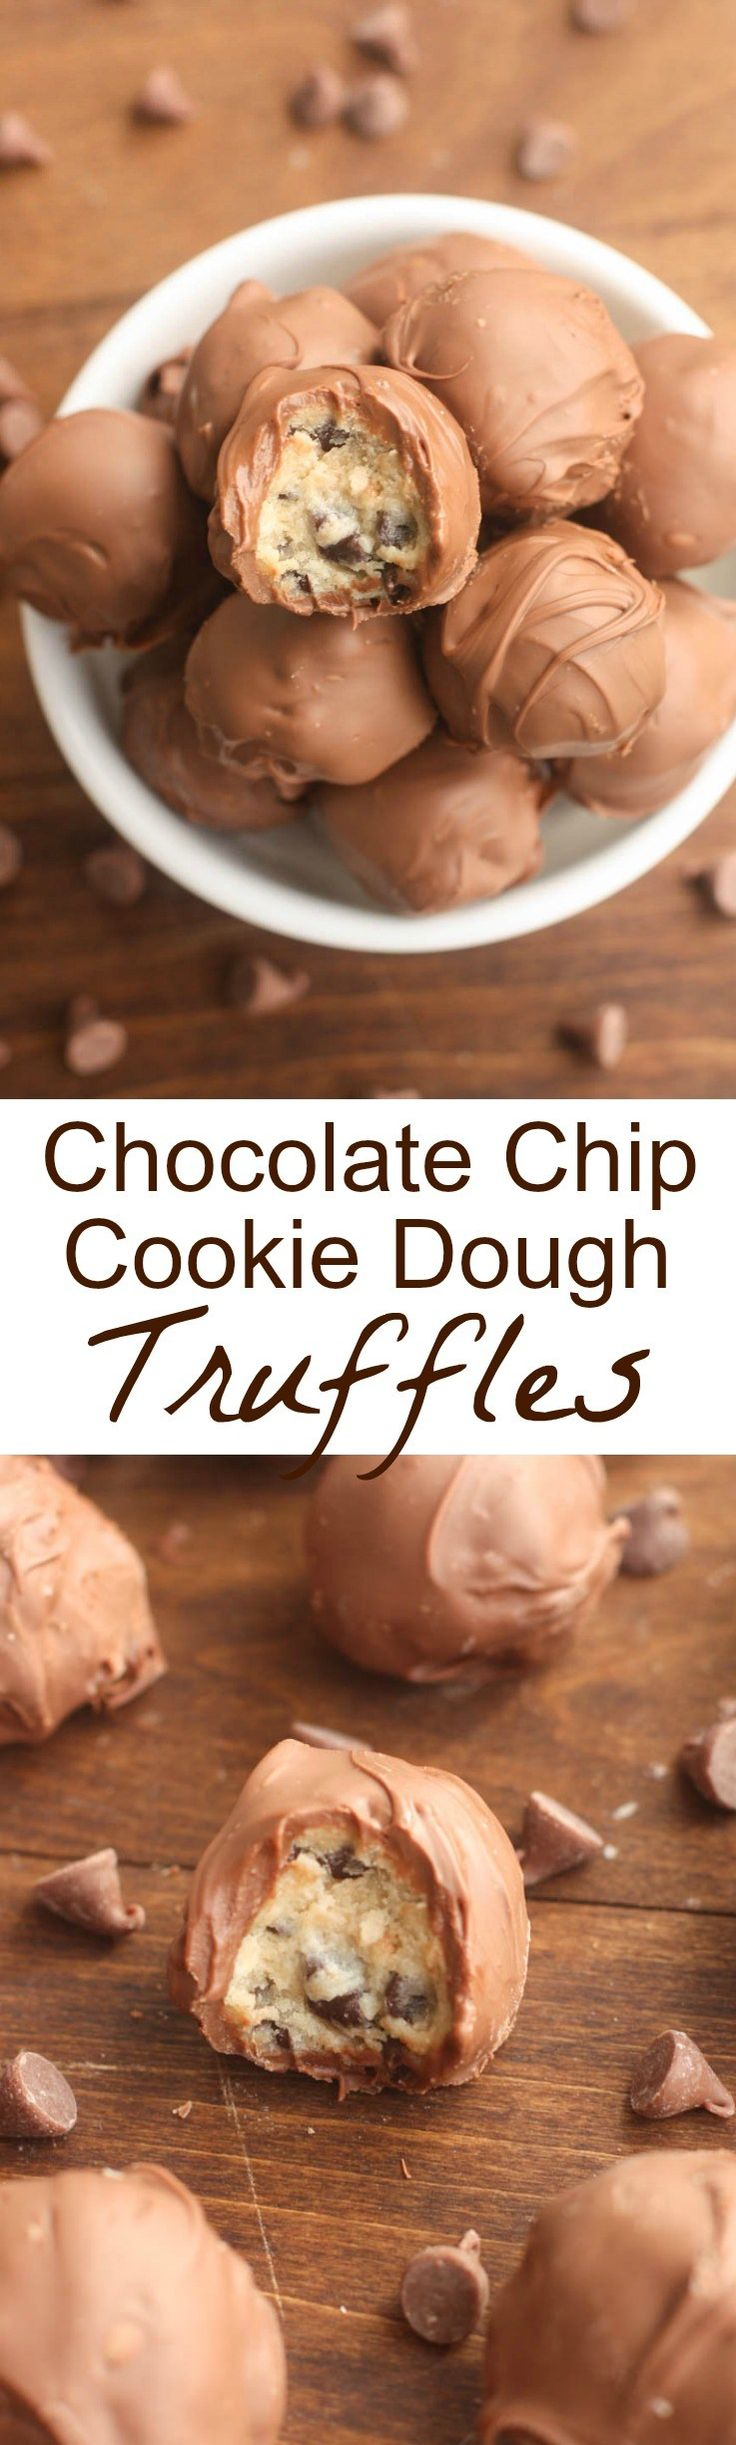 Best 20+ Melting chocolate chips ideas on Pinterest | Melted ...